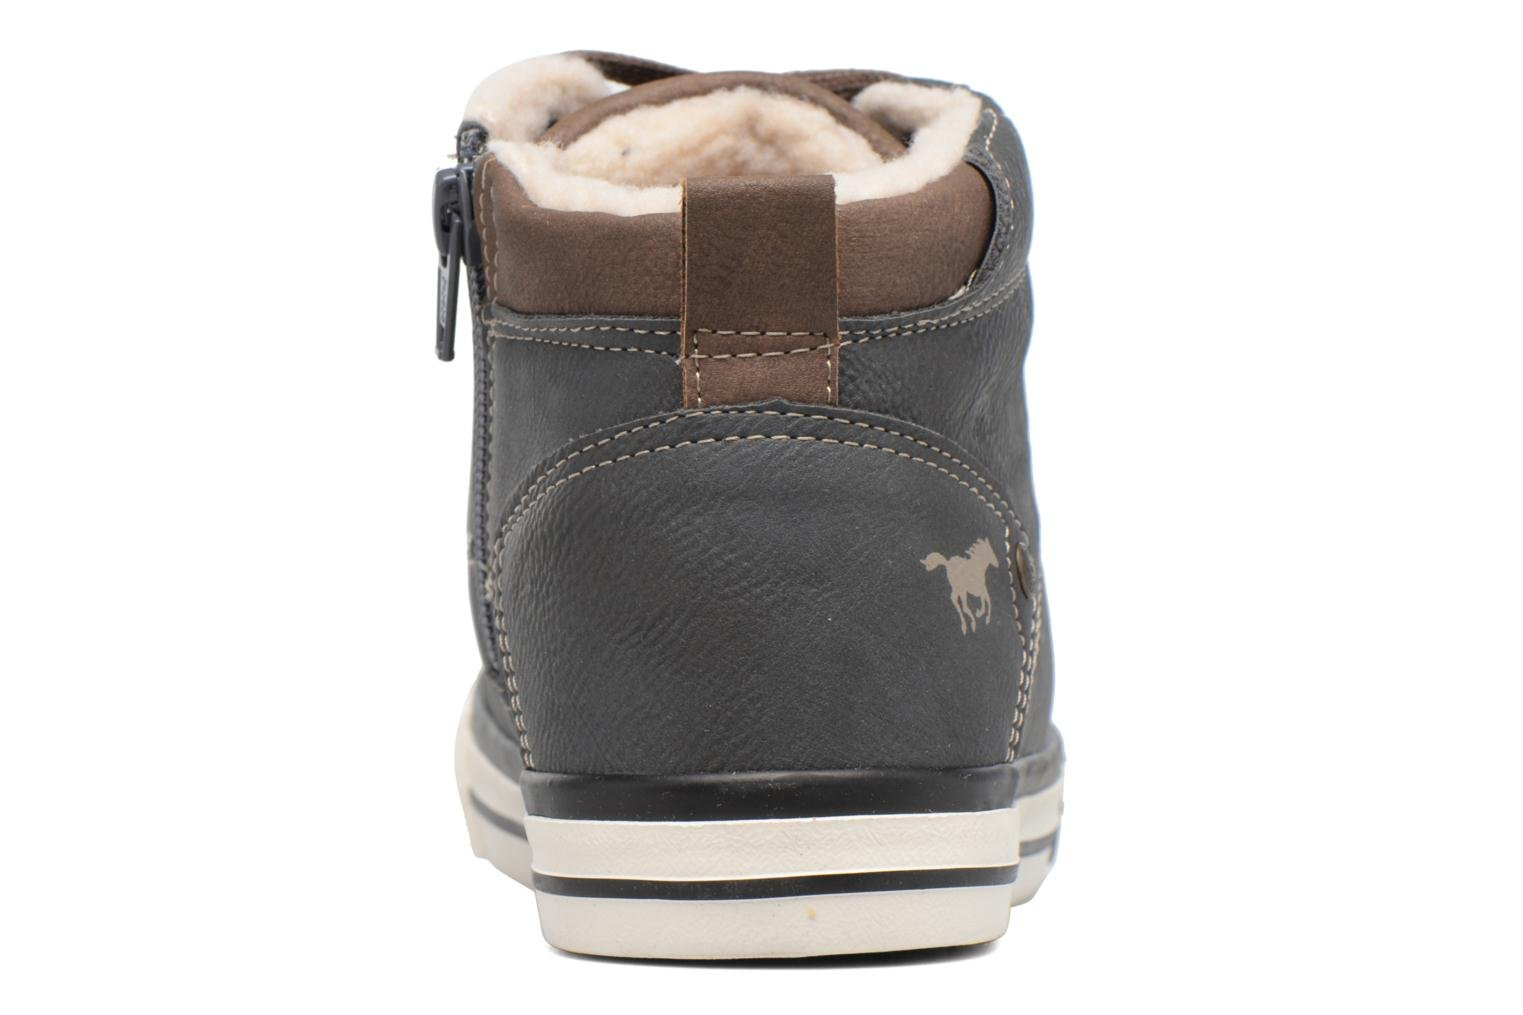 Graphit Mustang shoes Benno (Gris)